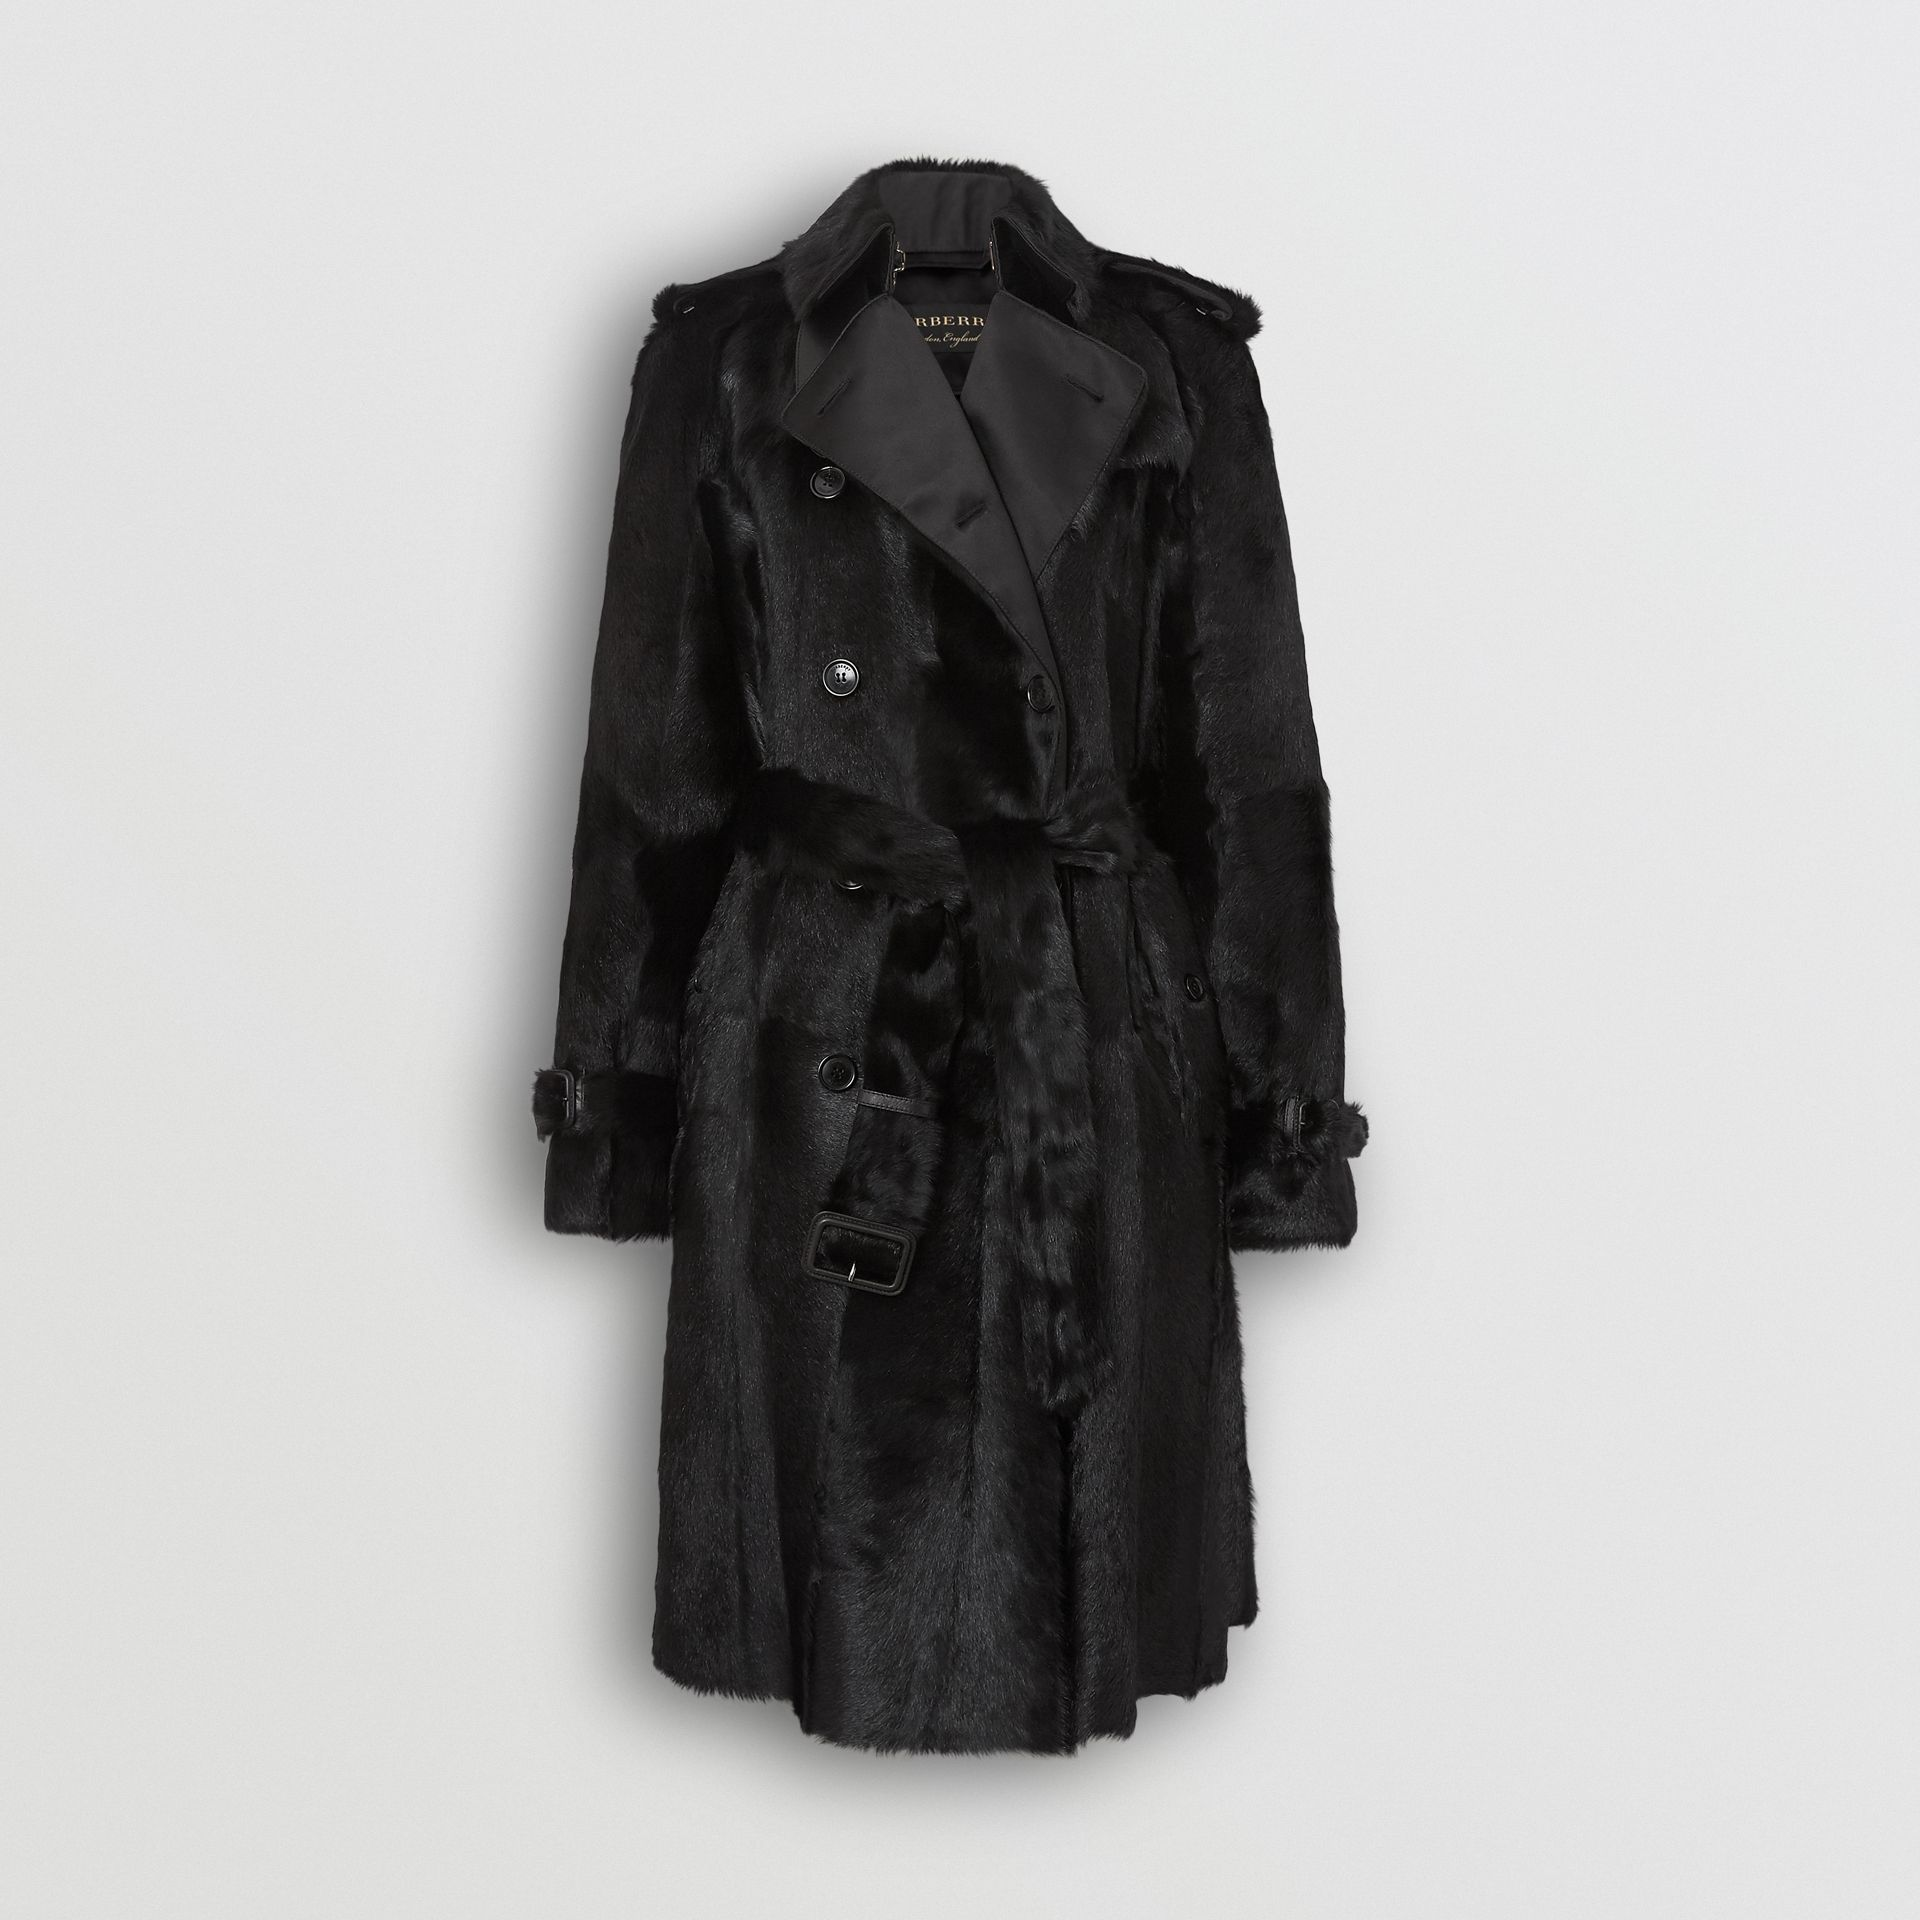 Goat Trench Coat in Black - Women | Burberry Australia - gallery image 3